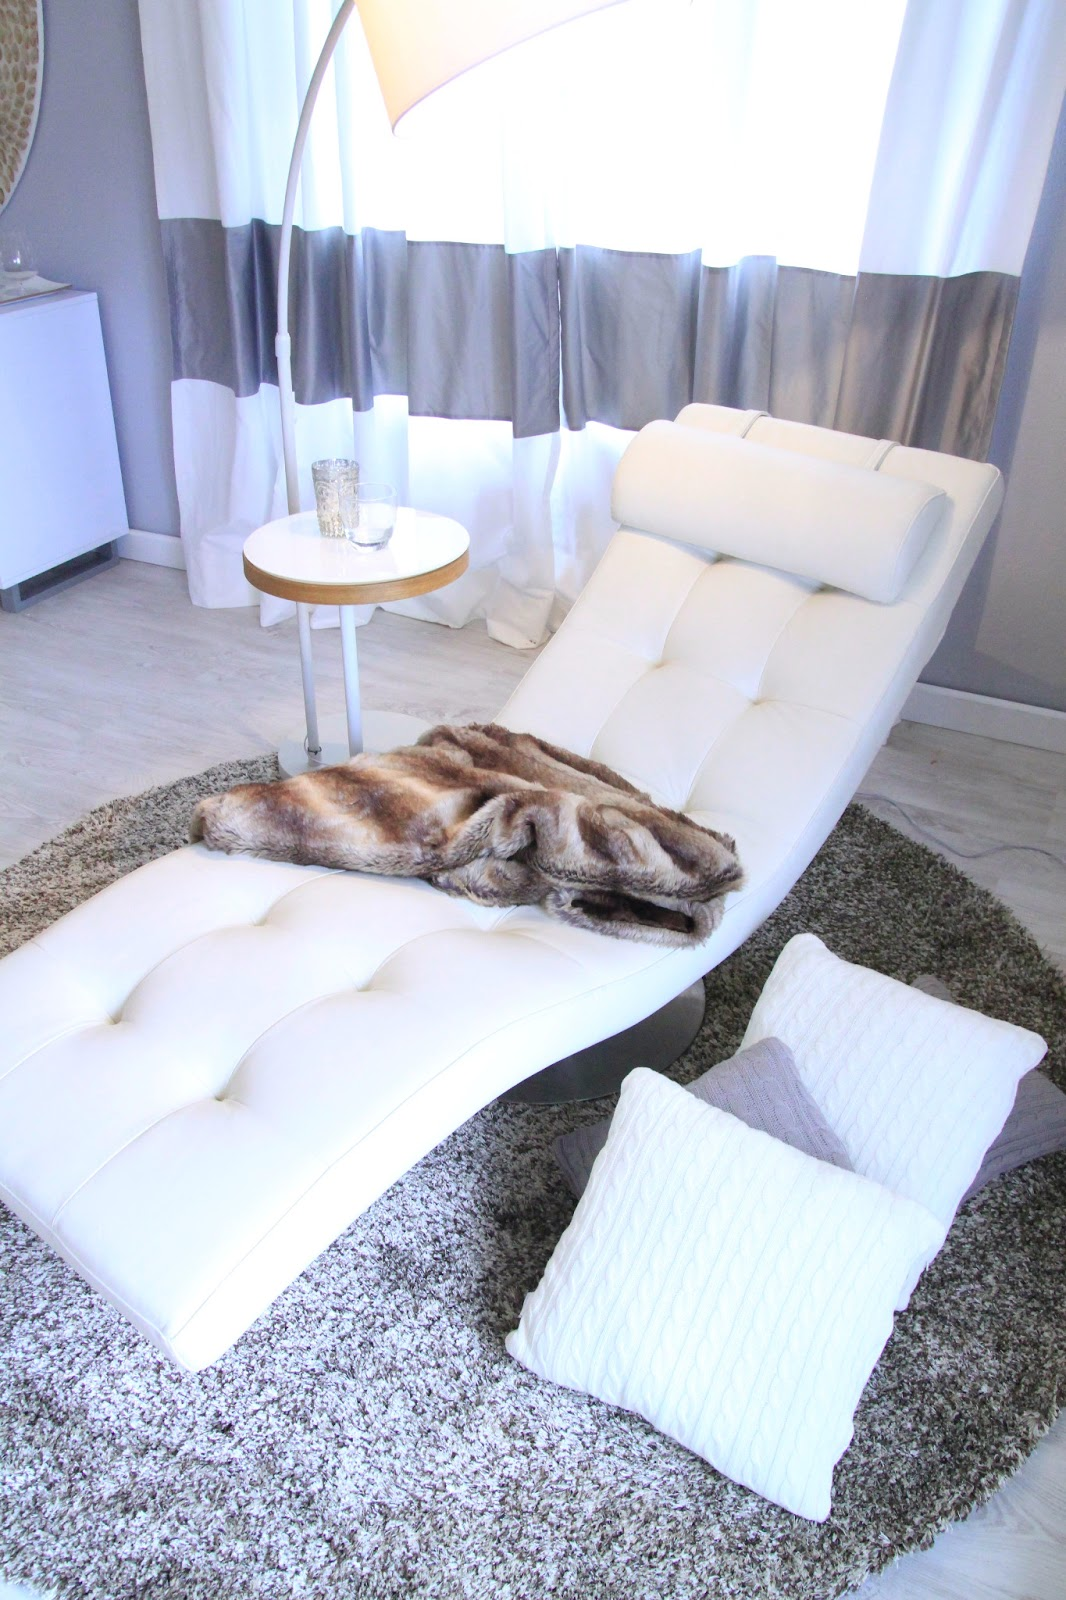 Celebrity Homes Querido Mudei A Casa Tv Show Before After Part Ii -> Tapetes Para Sala Ikea